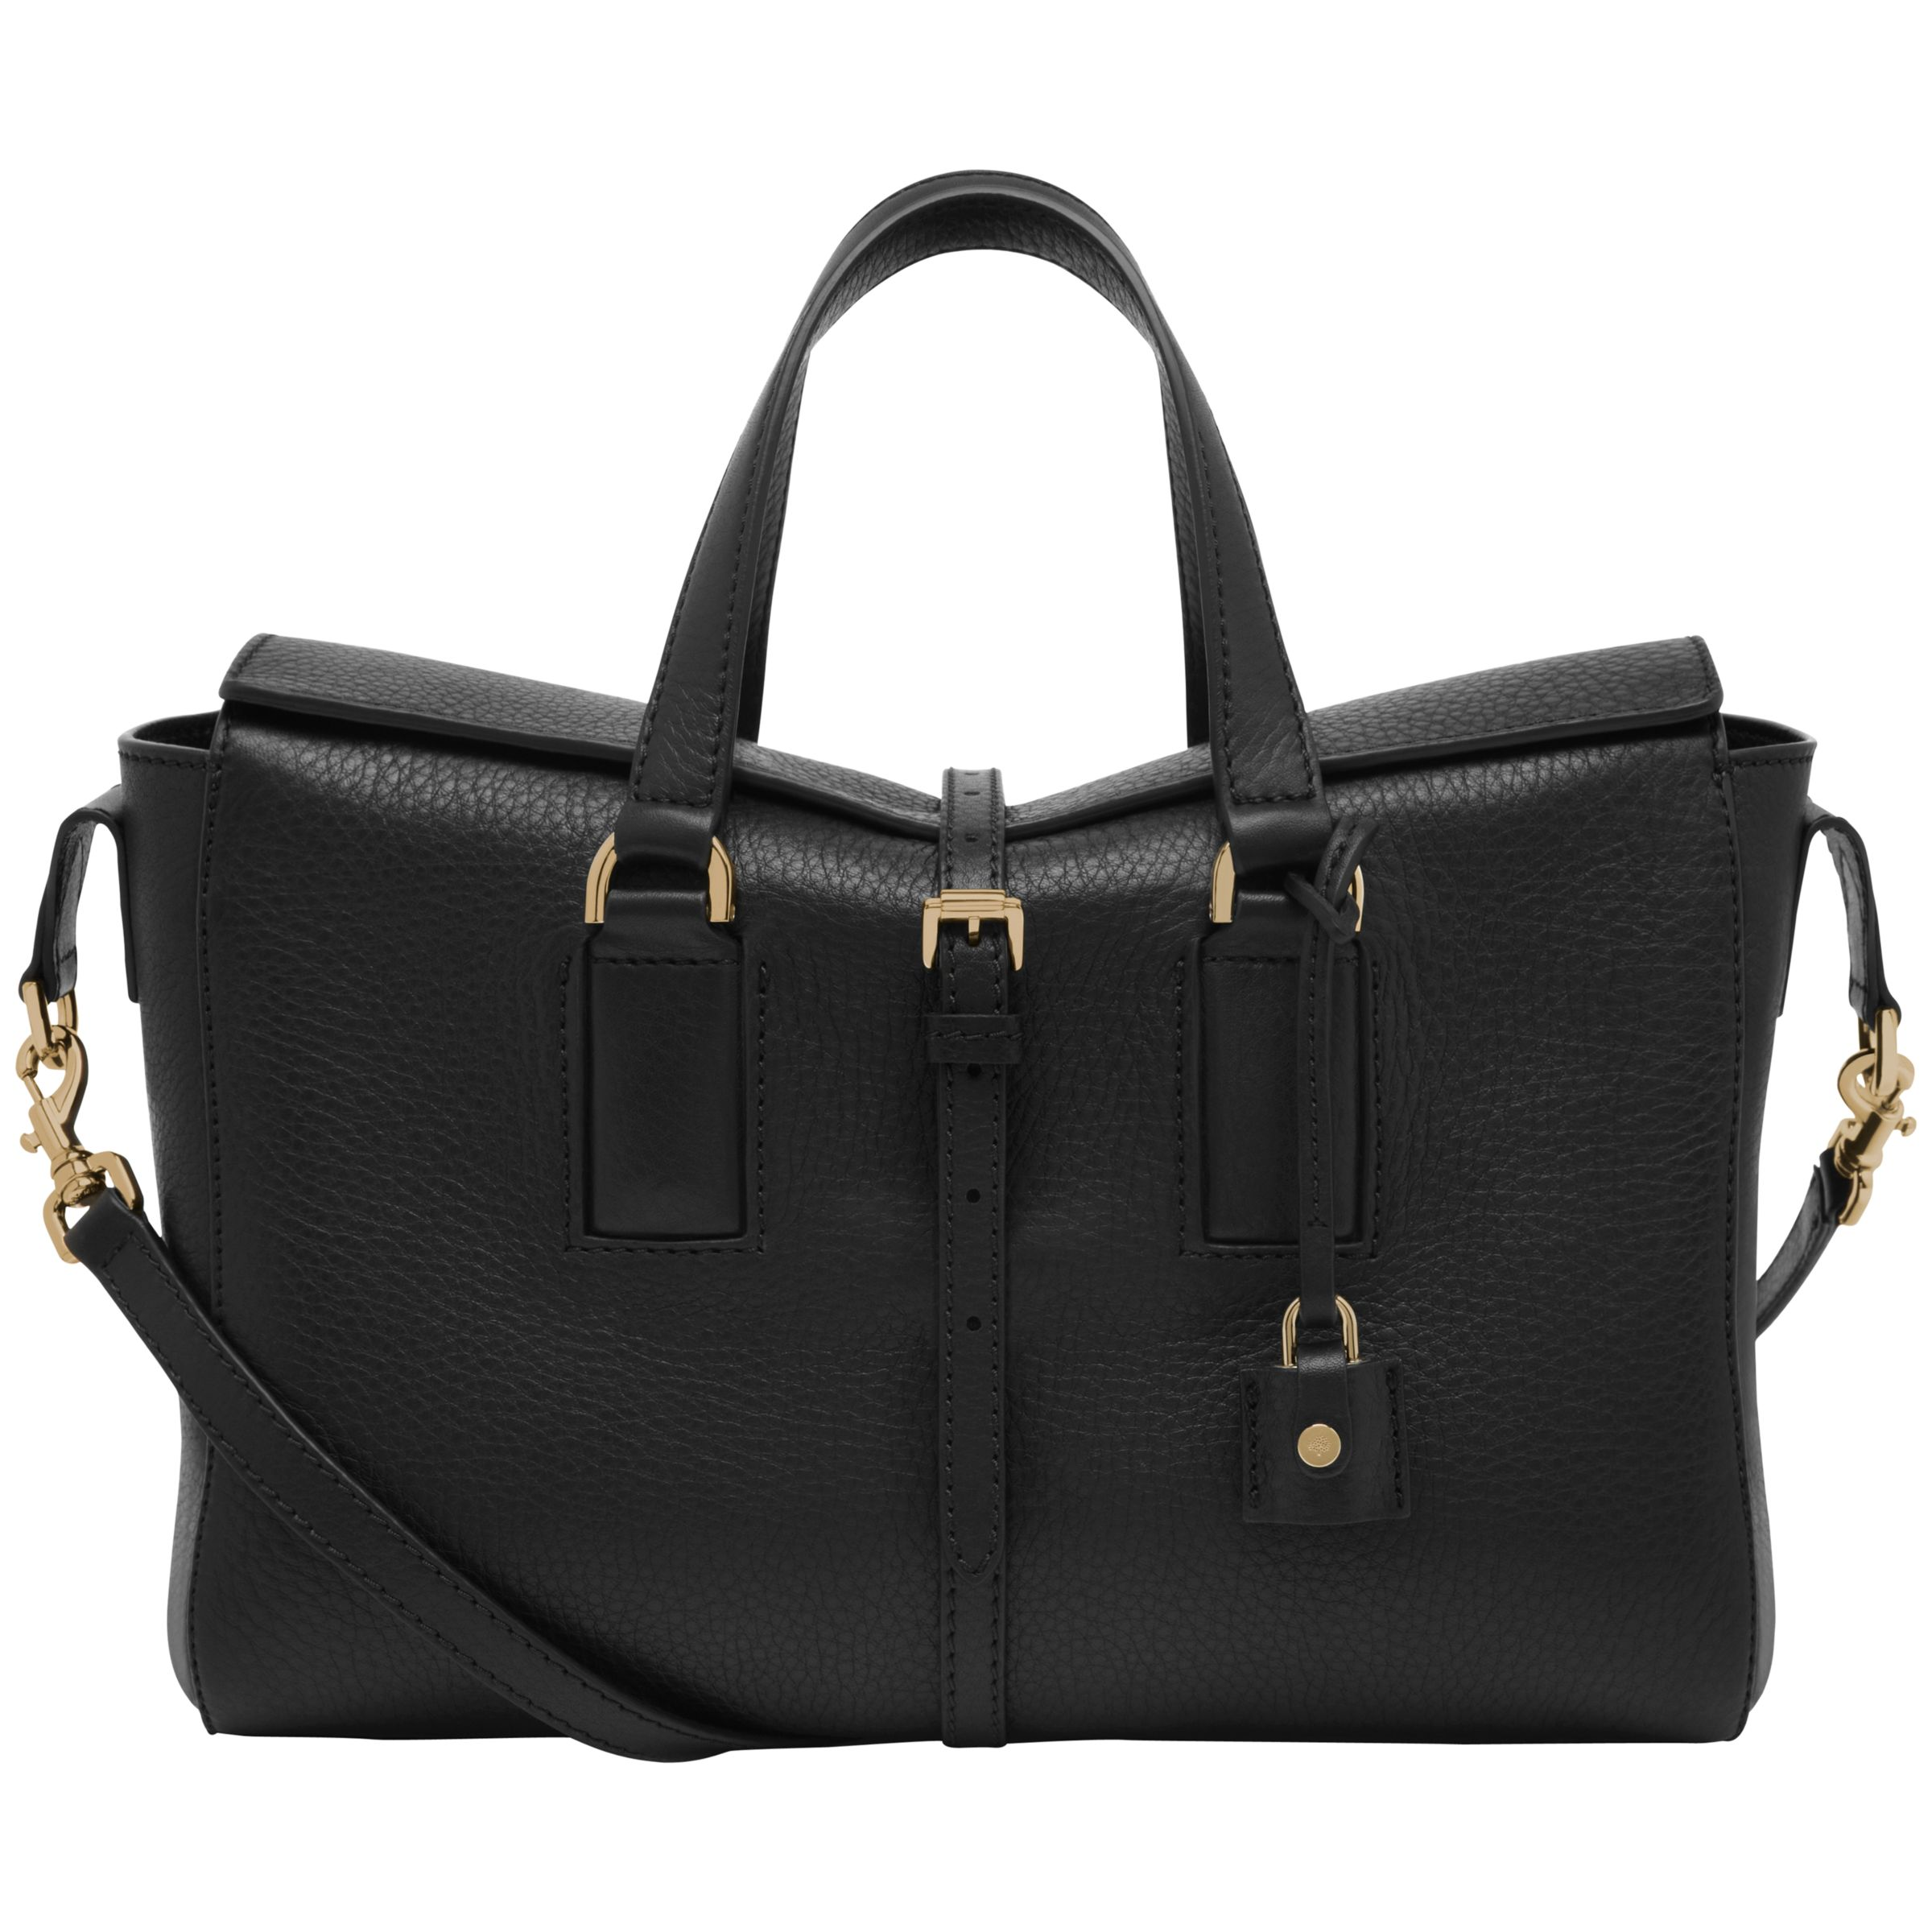 34079882c7 ... sale mulberry roxette small leather grab bag at john lewis partners  240f8 00cd9